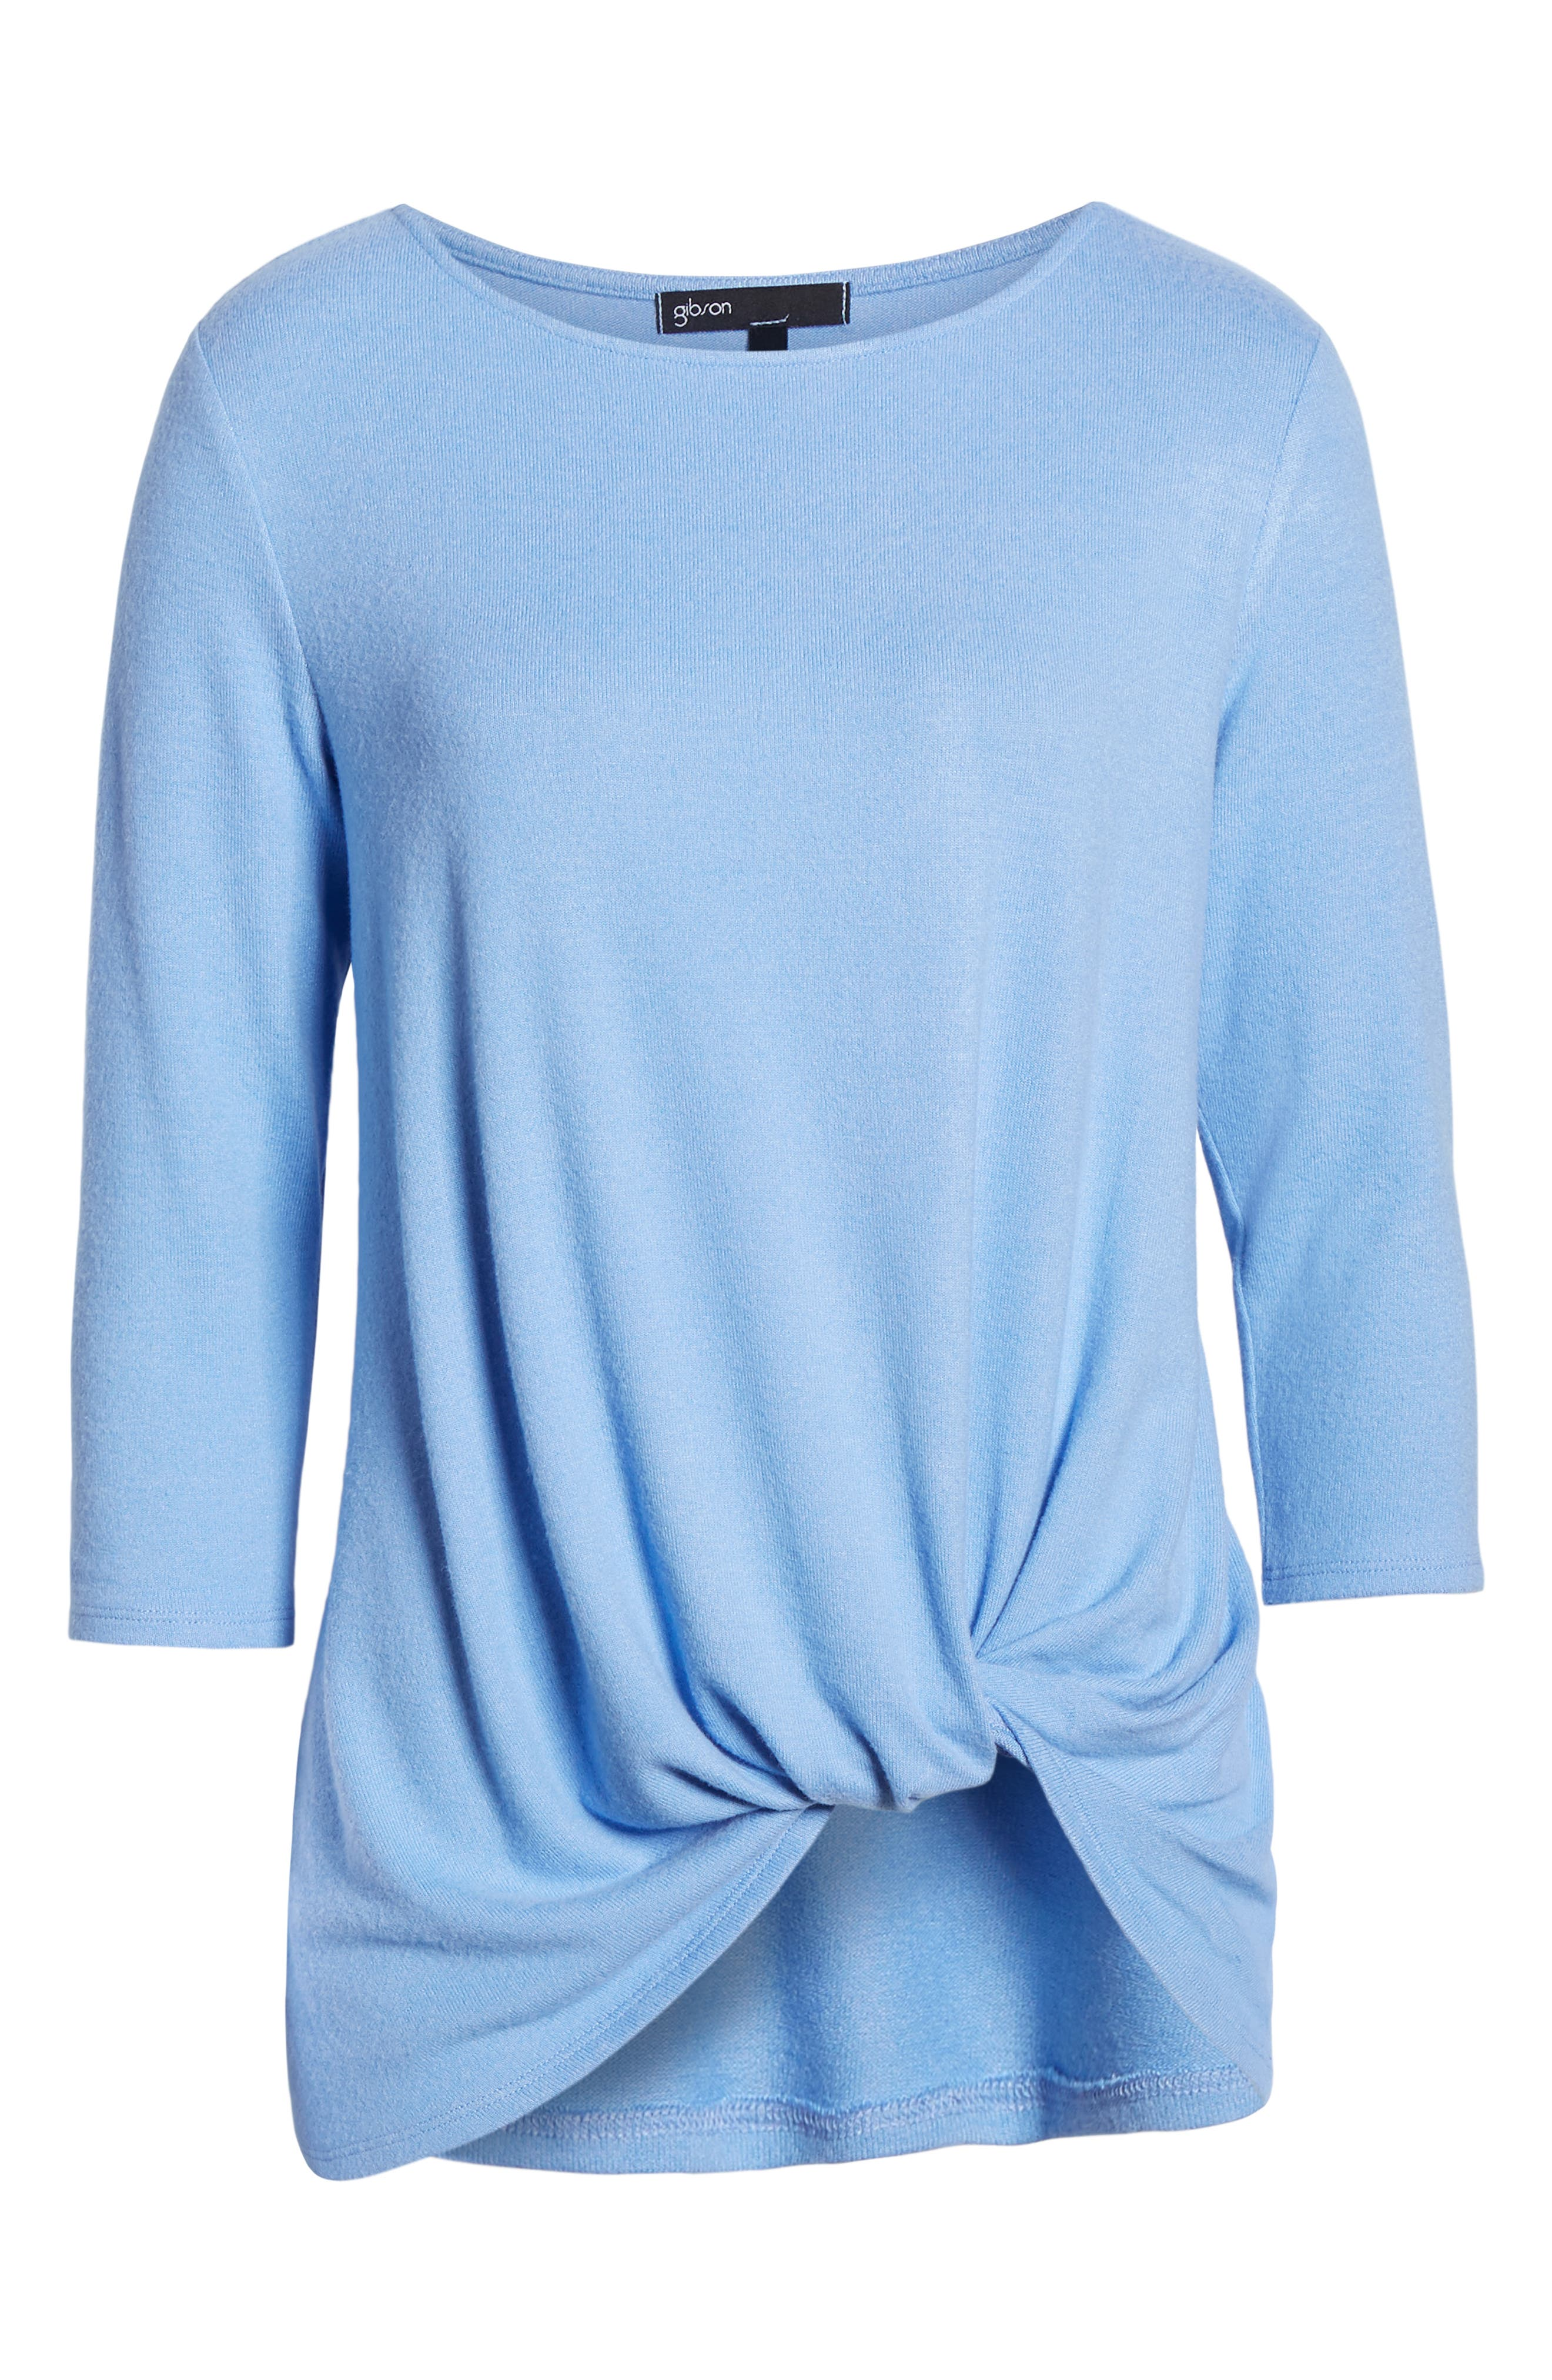 GIBSON,                             Cozy Twist Front Pullover,                             Alternate thumbnail 6, color,                             CORNFLOWER